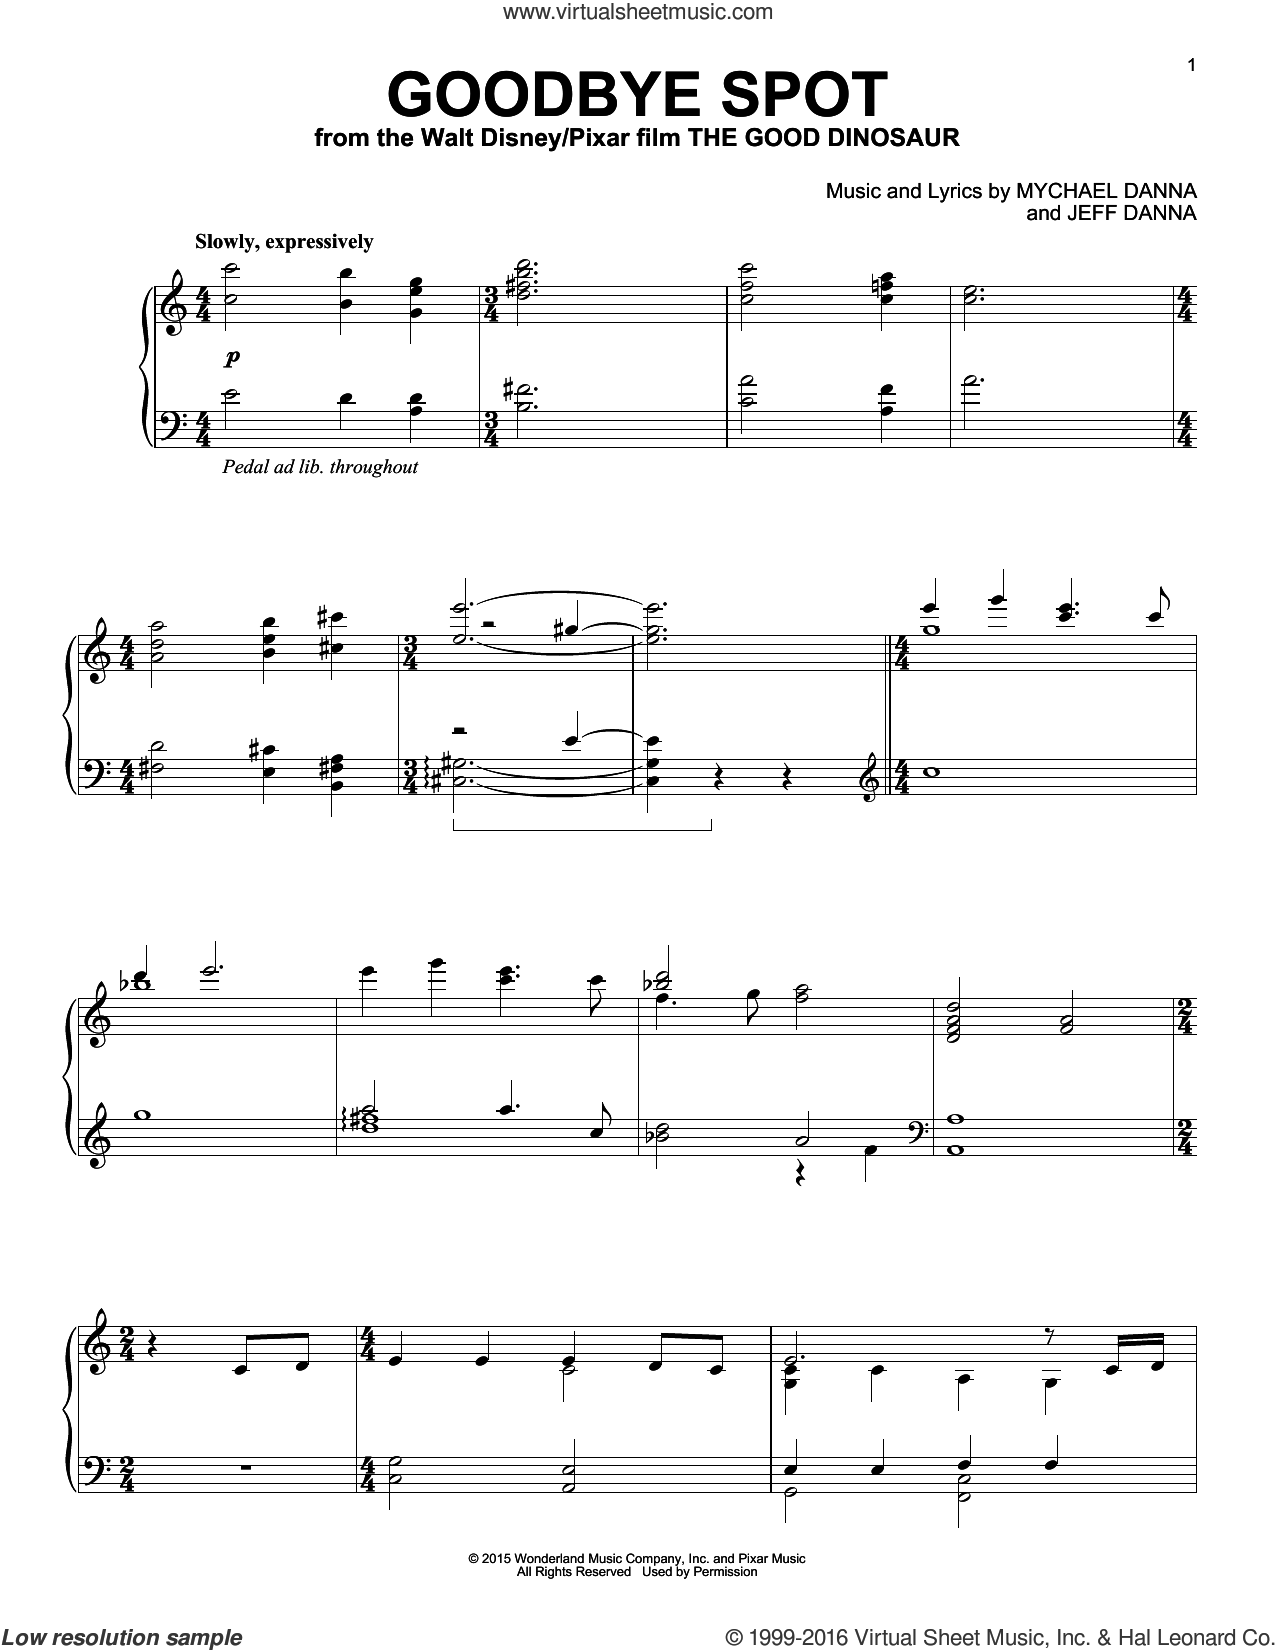 Goodbye Spot sheet music for piano solo by Mychael & Jeff Danna, Jeff Danna and Mychael Danna, intermediate skill level